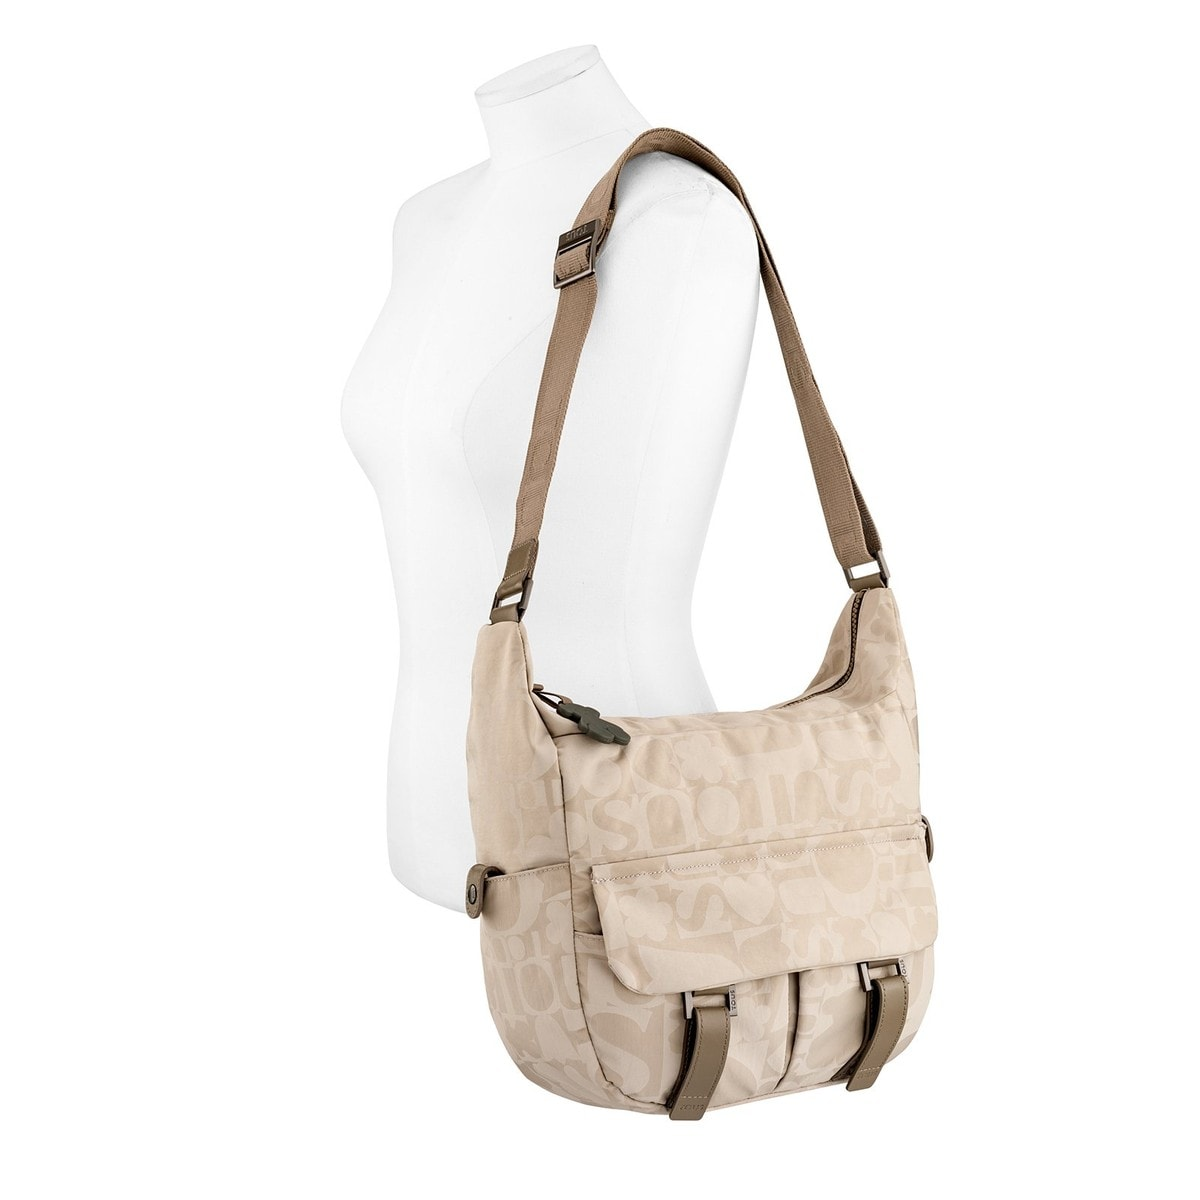 Beige-ivory colored Nylon Cubik Colores Crossbody bag